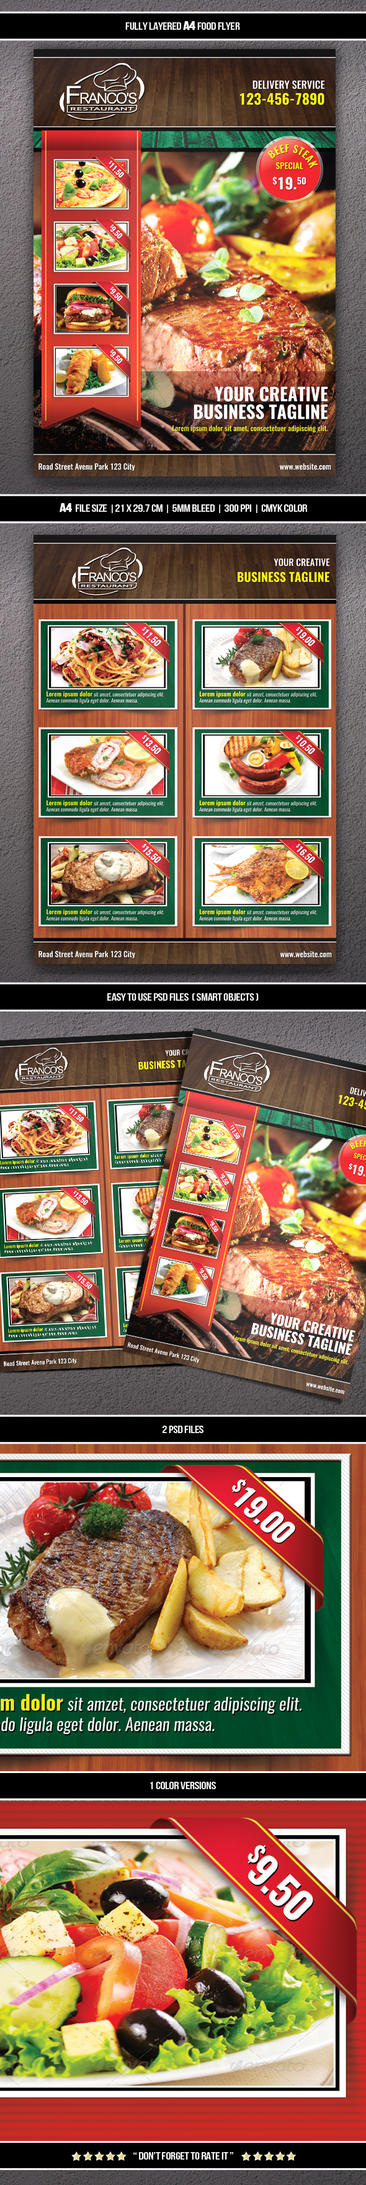 Food Flyer 7 (A4) by Mograsol